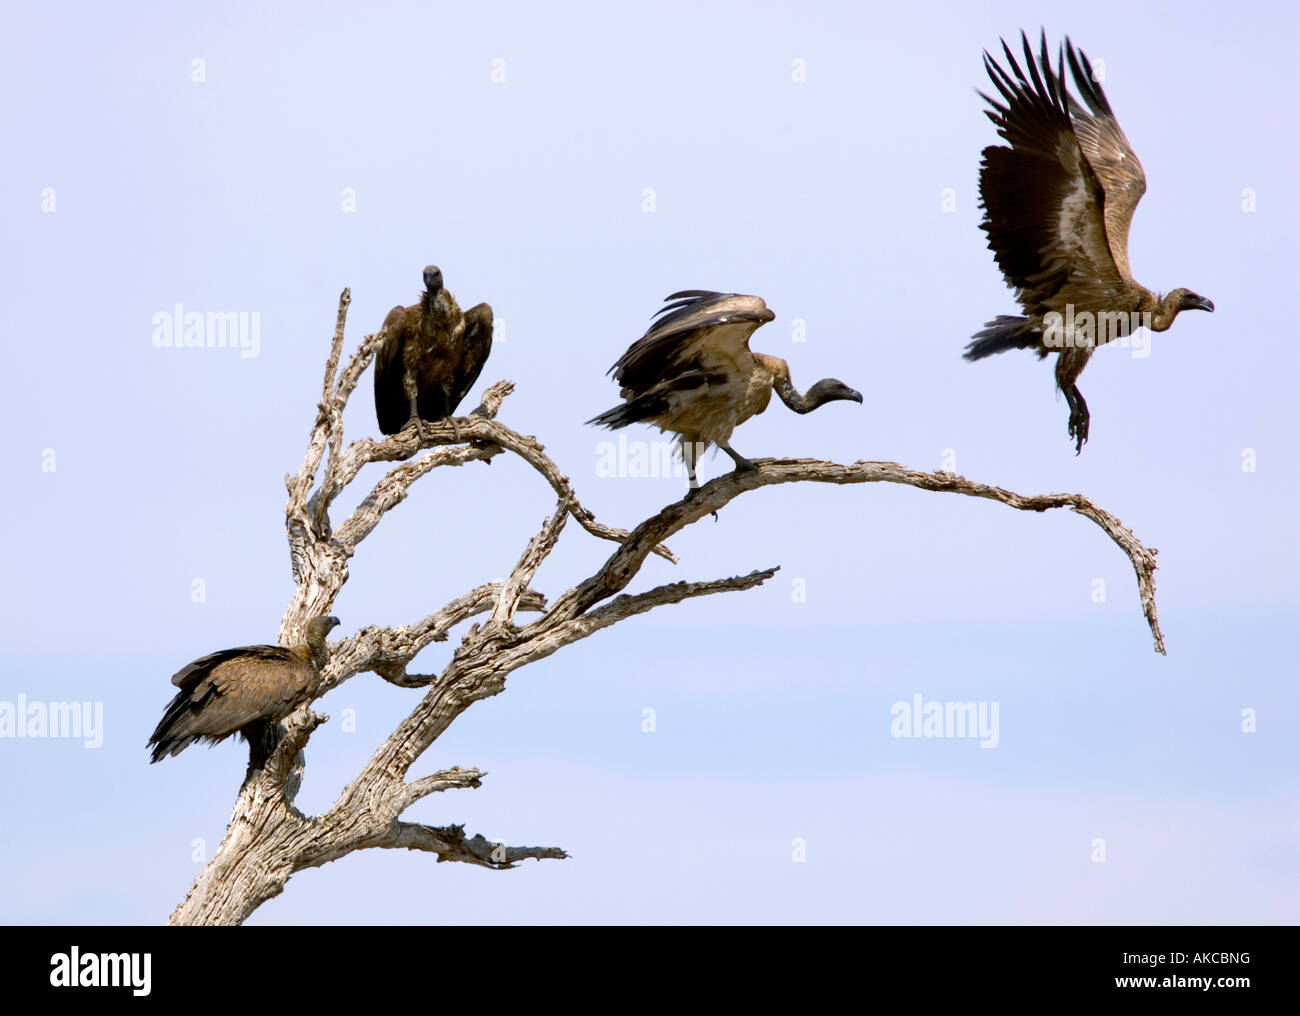 African white-backed vultures, gyps africanus, take flight from a perch in Chobe National Park game reserve in Botswana - Stock Image